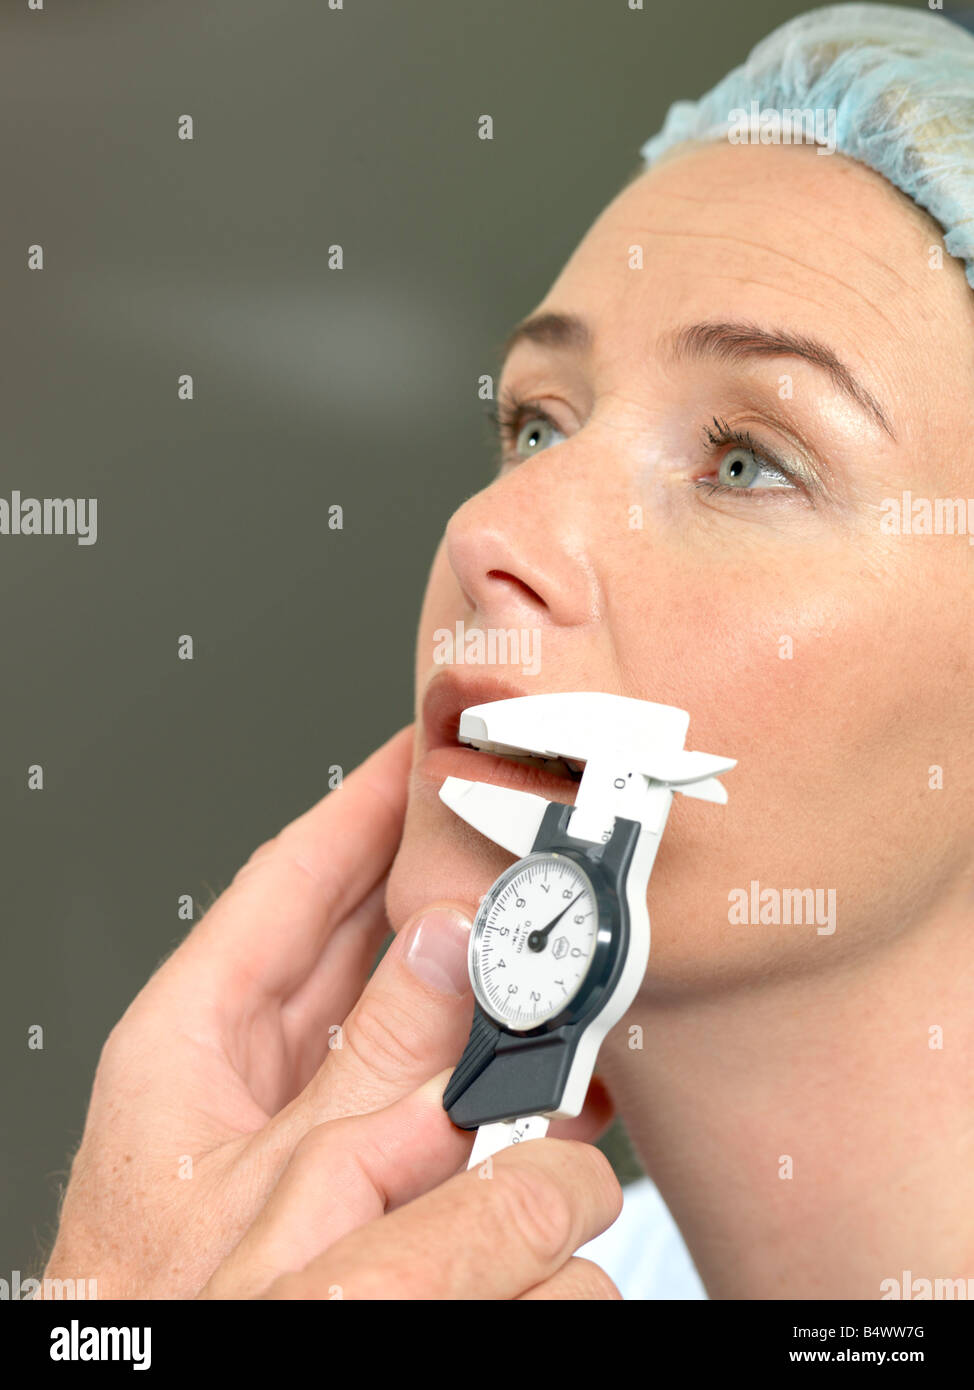 Doctor preparing patient for surgery - Stock Image